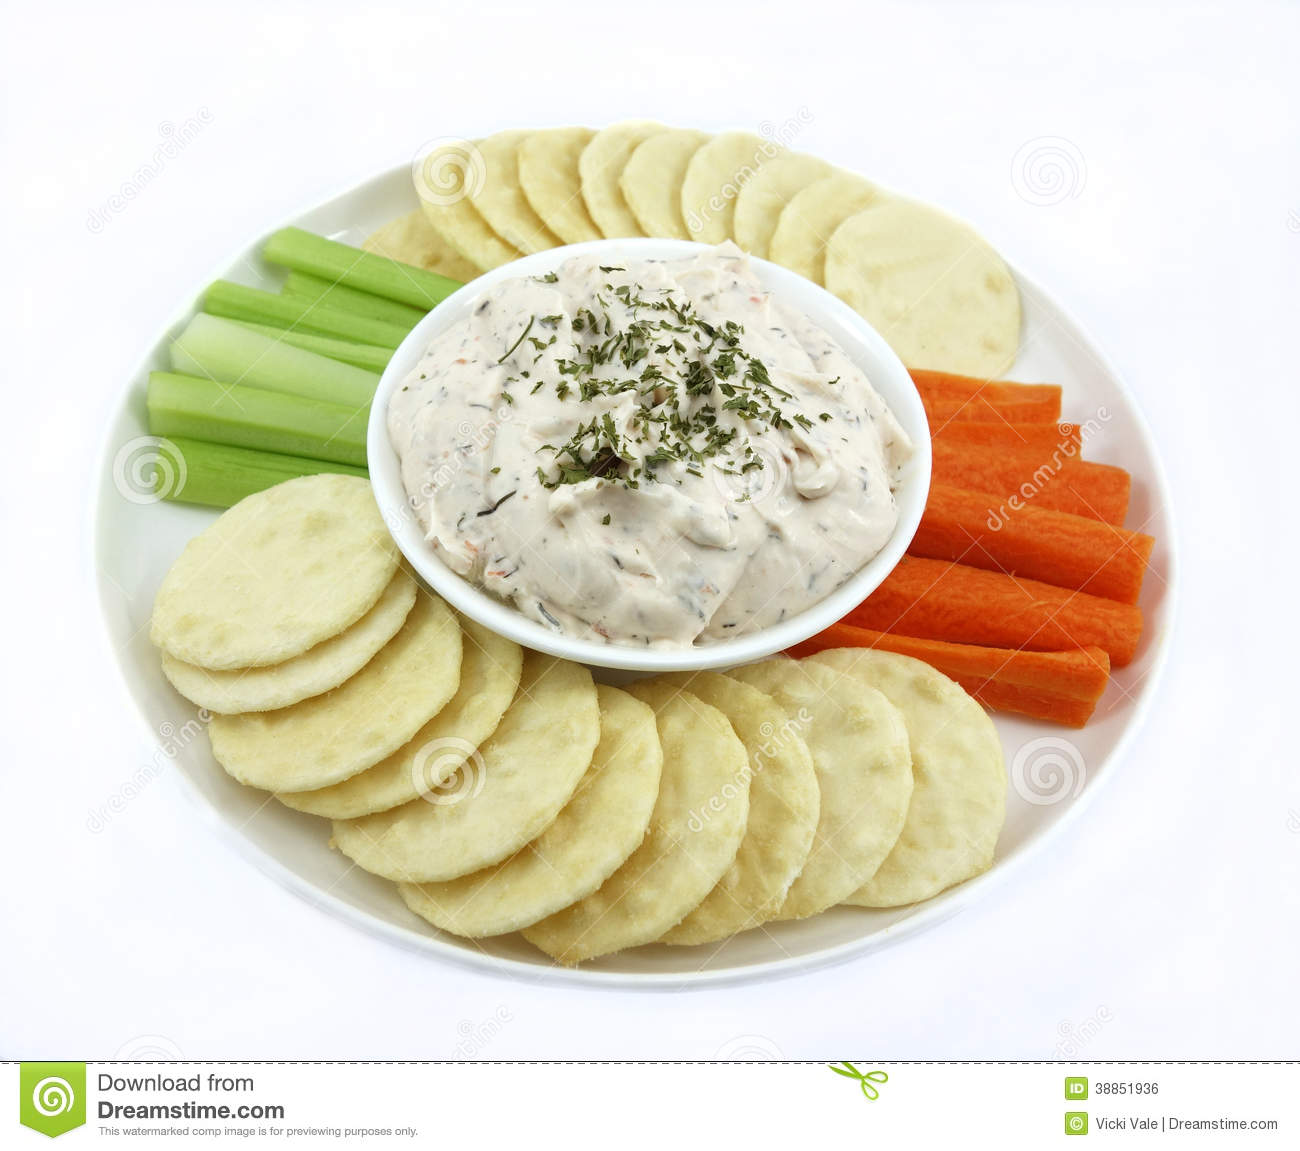 ... with dry biscuits surround a small bowl of creamy salmon and dill dip